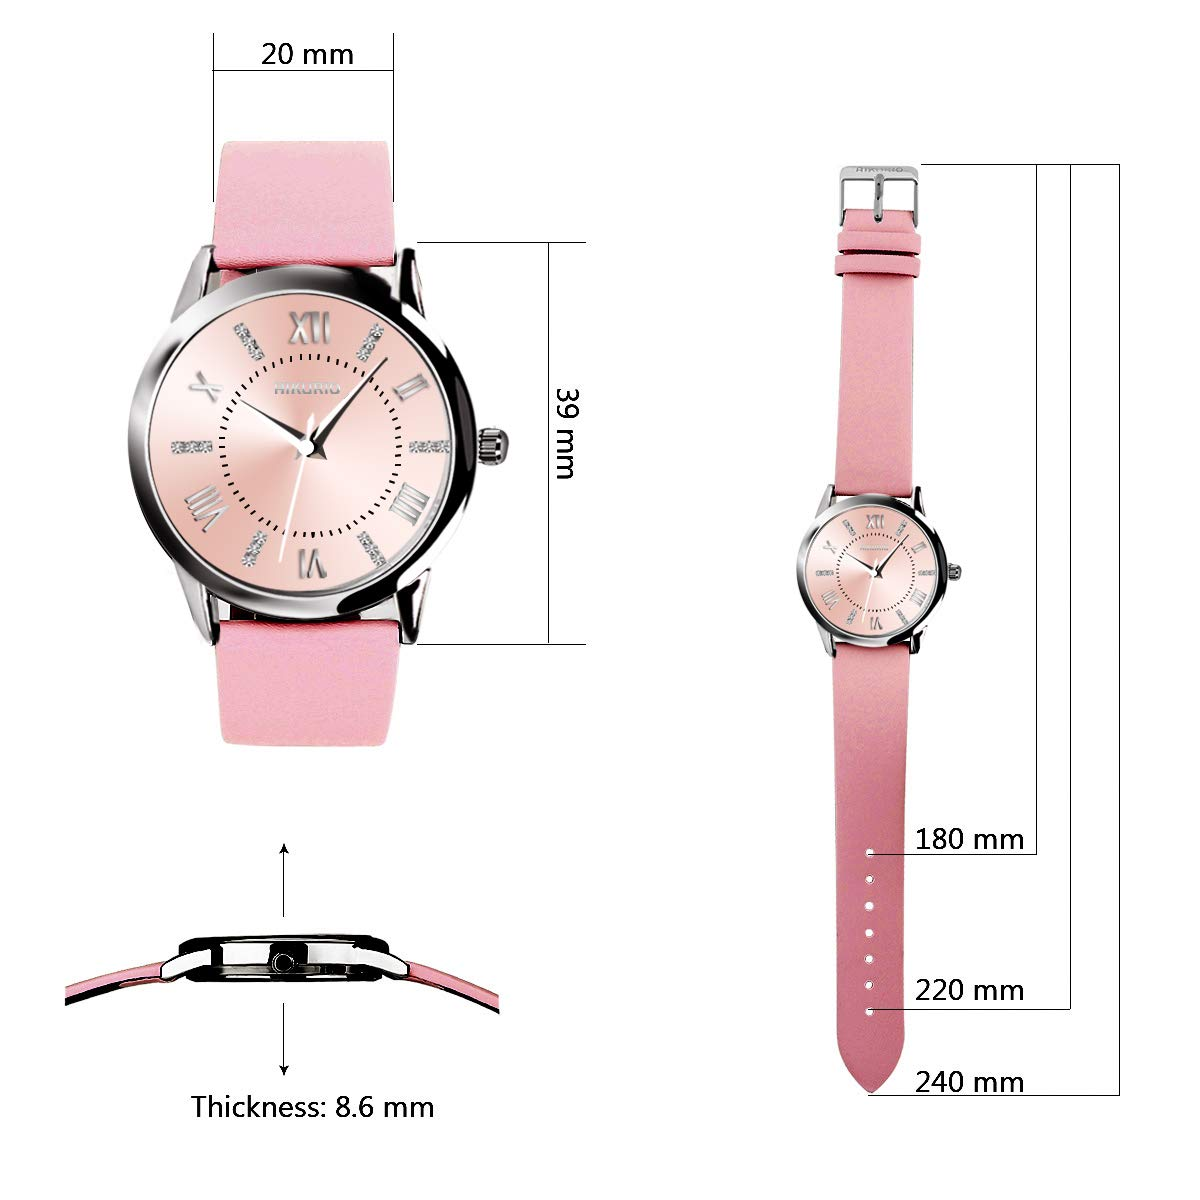 AIKURIO Women s Wrist Watch Analog Quartz with Leather Strap and Crystal Dial 30M Waterproof Classic Daily Style AKR001